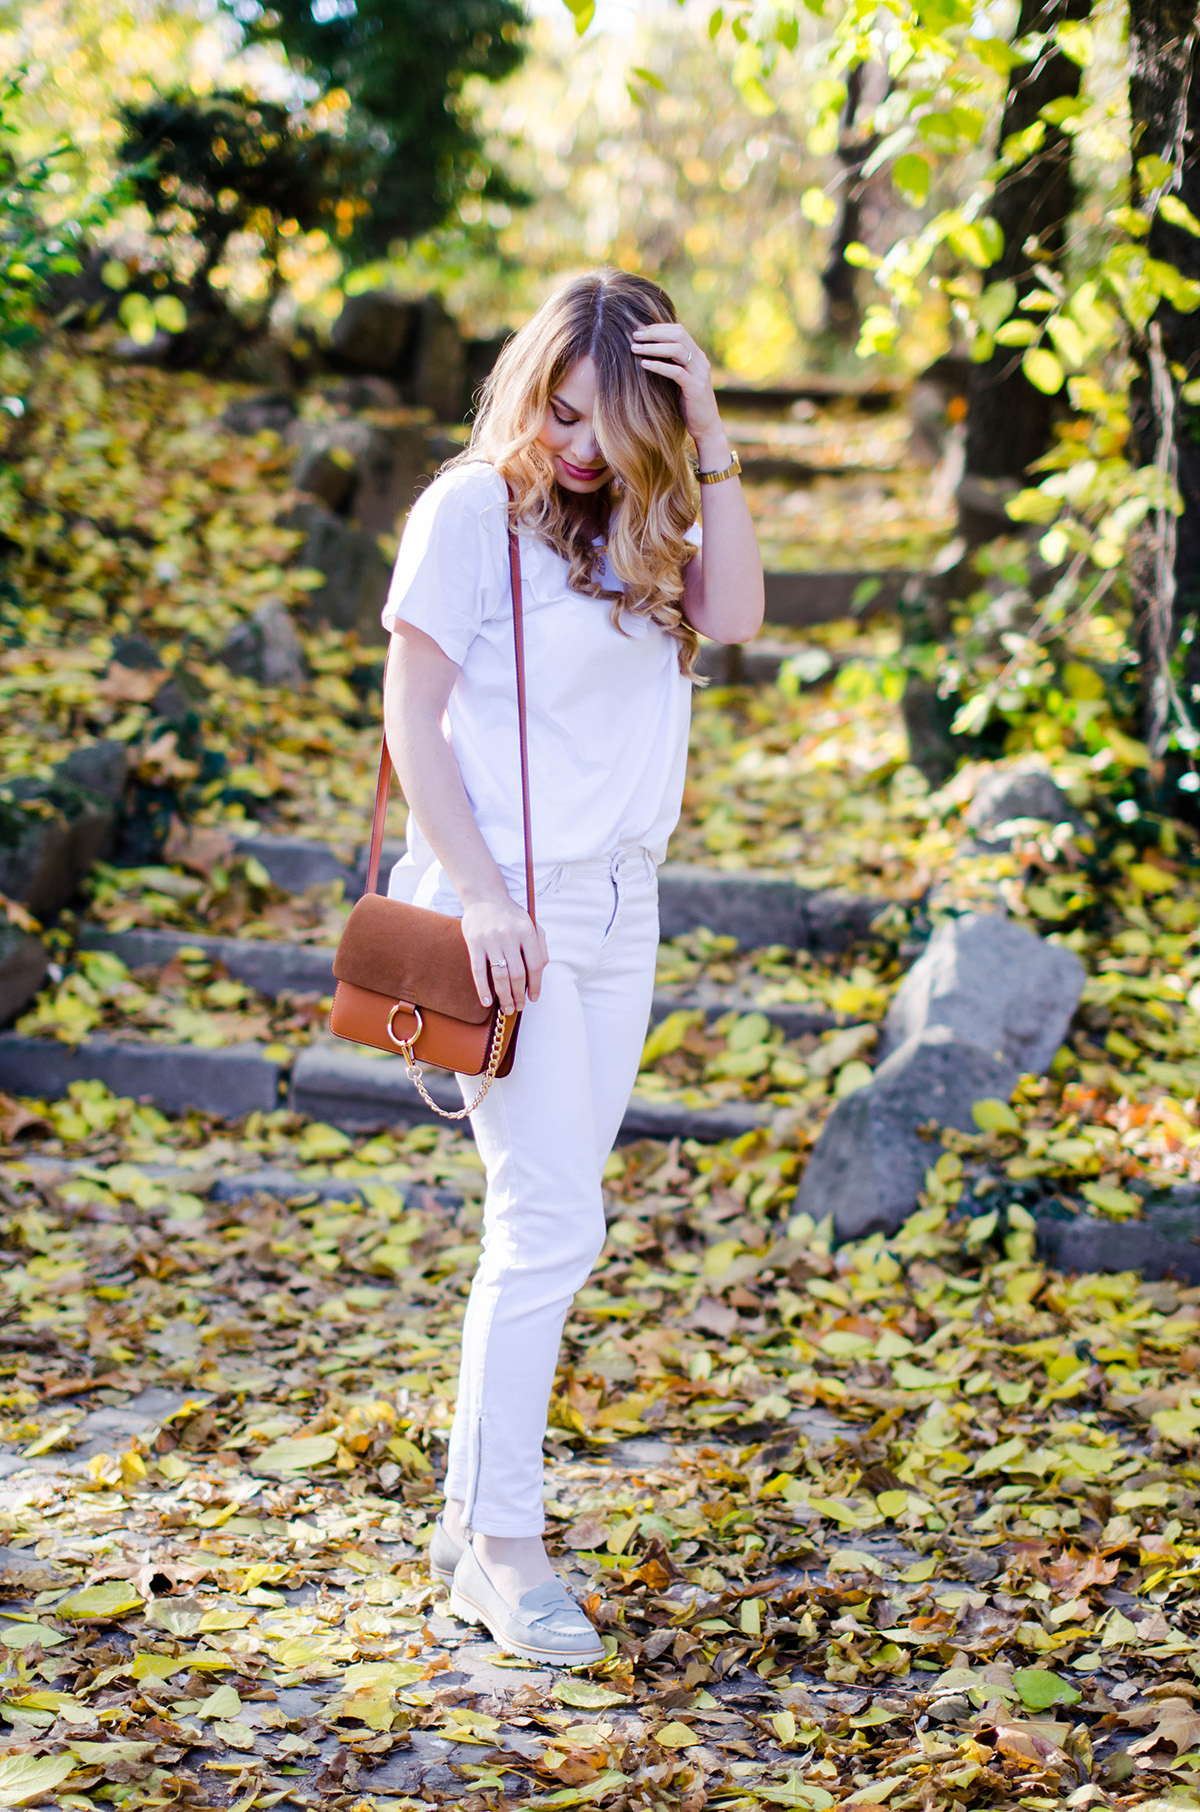 ALL-WHITE-OUTFIT-DENIM-JACKET-CHLOE-BAG-AUTUMN (5)